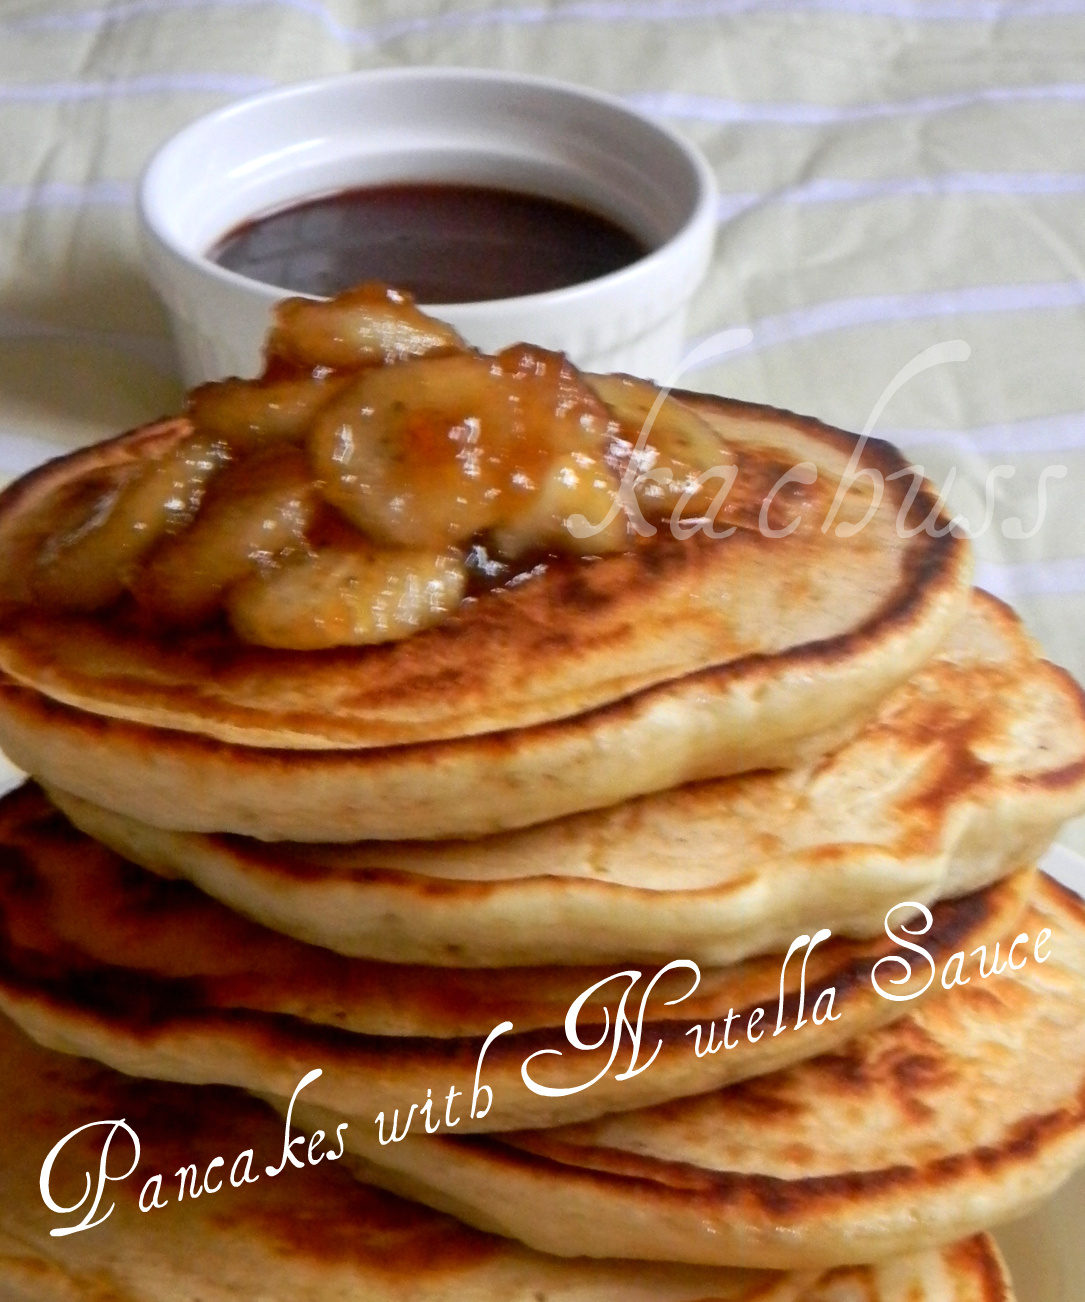 Kachuss Delights: Pancakes with Nutella Sauce - Hadi's fav.